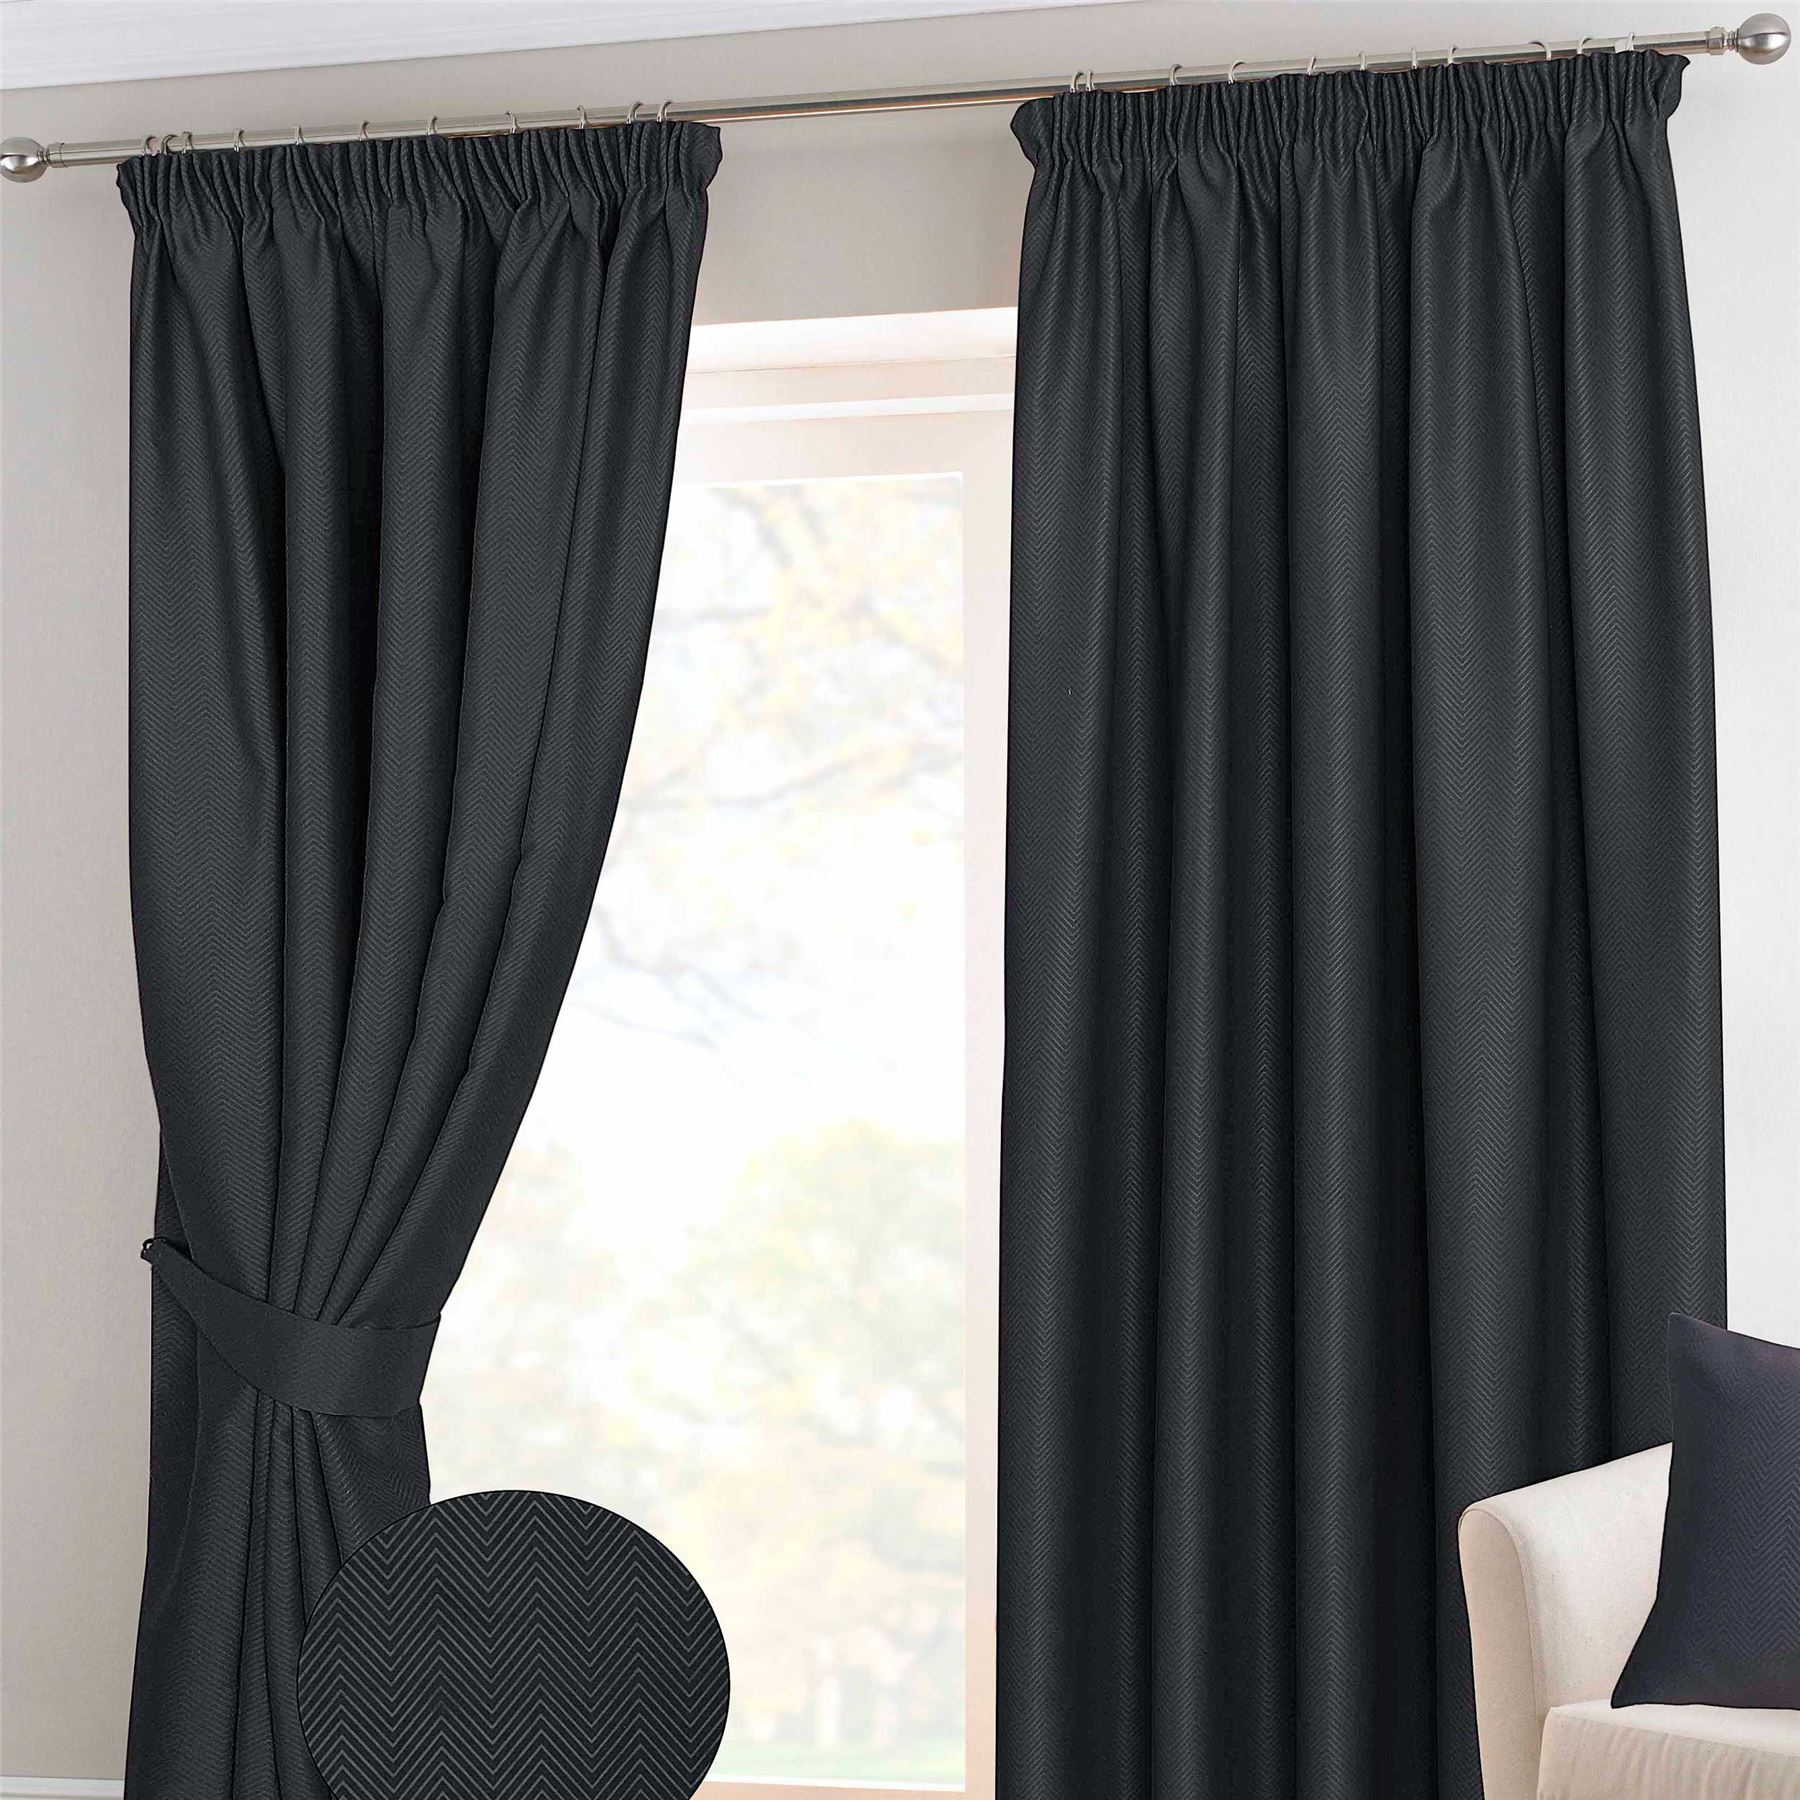 red curtains thermal thermaleclipse blackout walmartblackout at shower drapes grommet walmart decorative